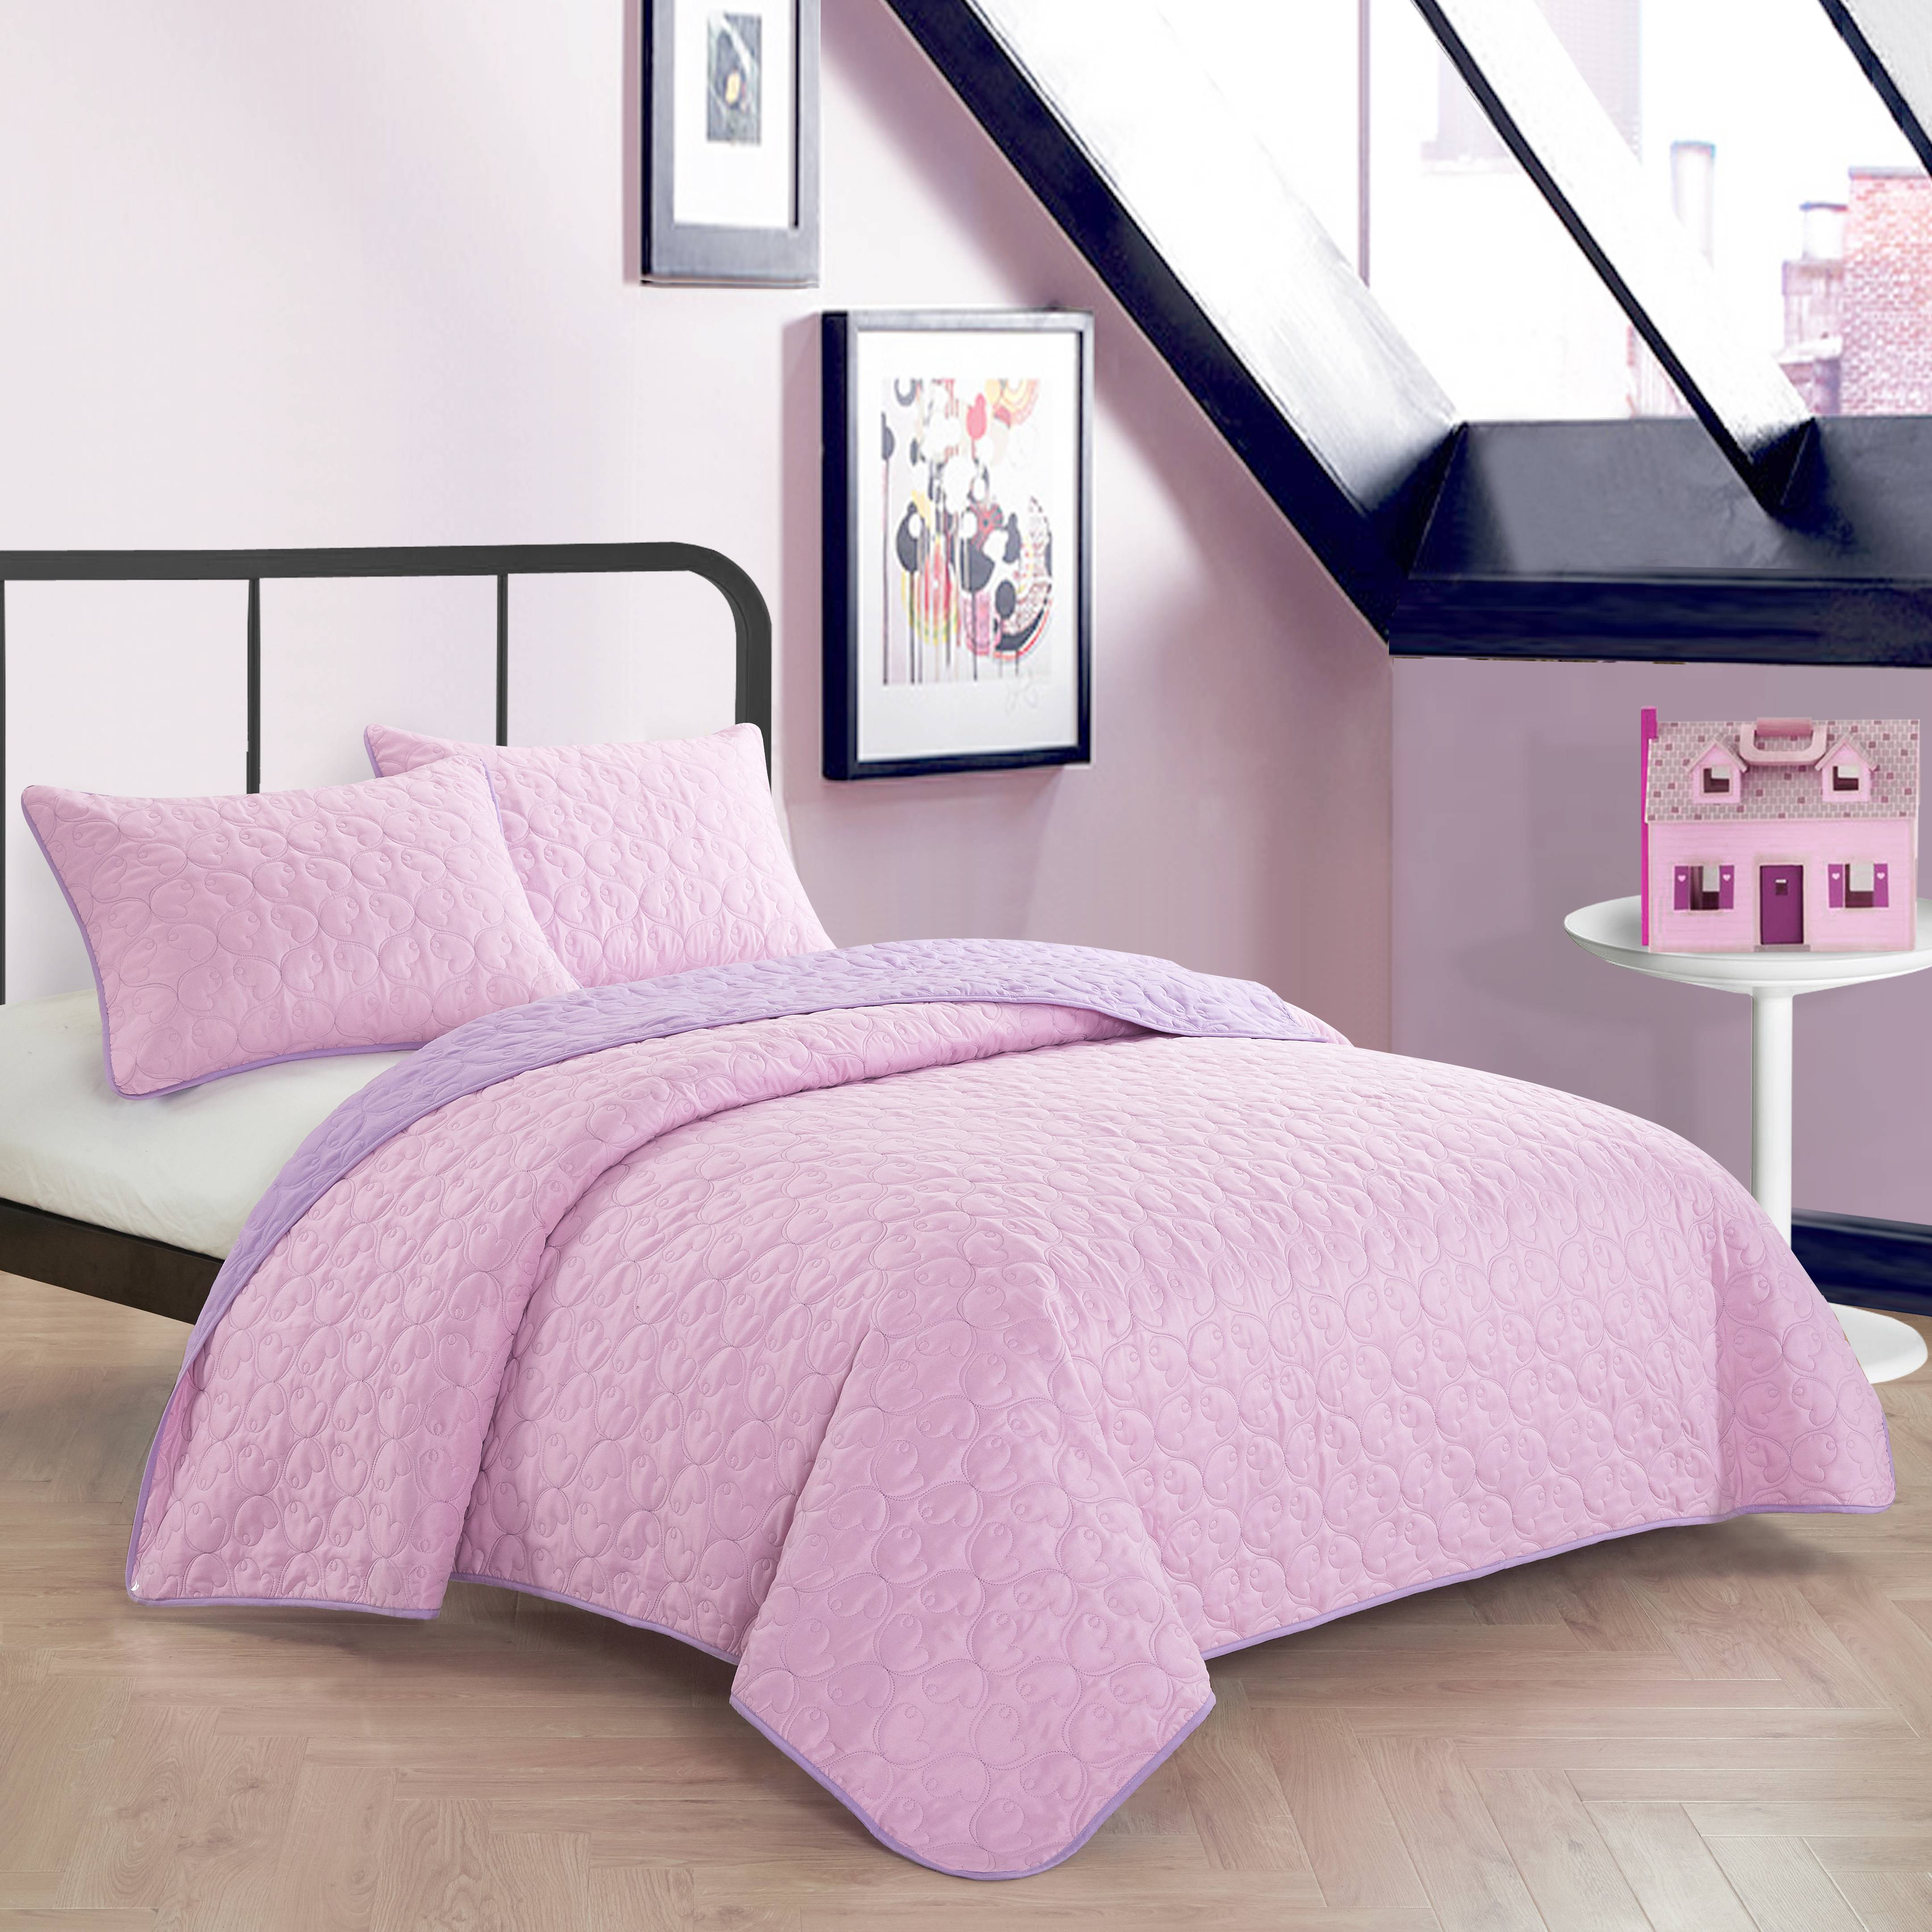 Mainstays Kids Blush Pink Reverse To Lavender Quilt Set